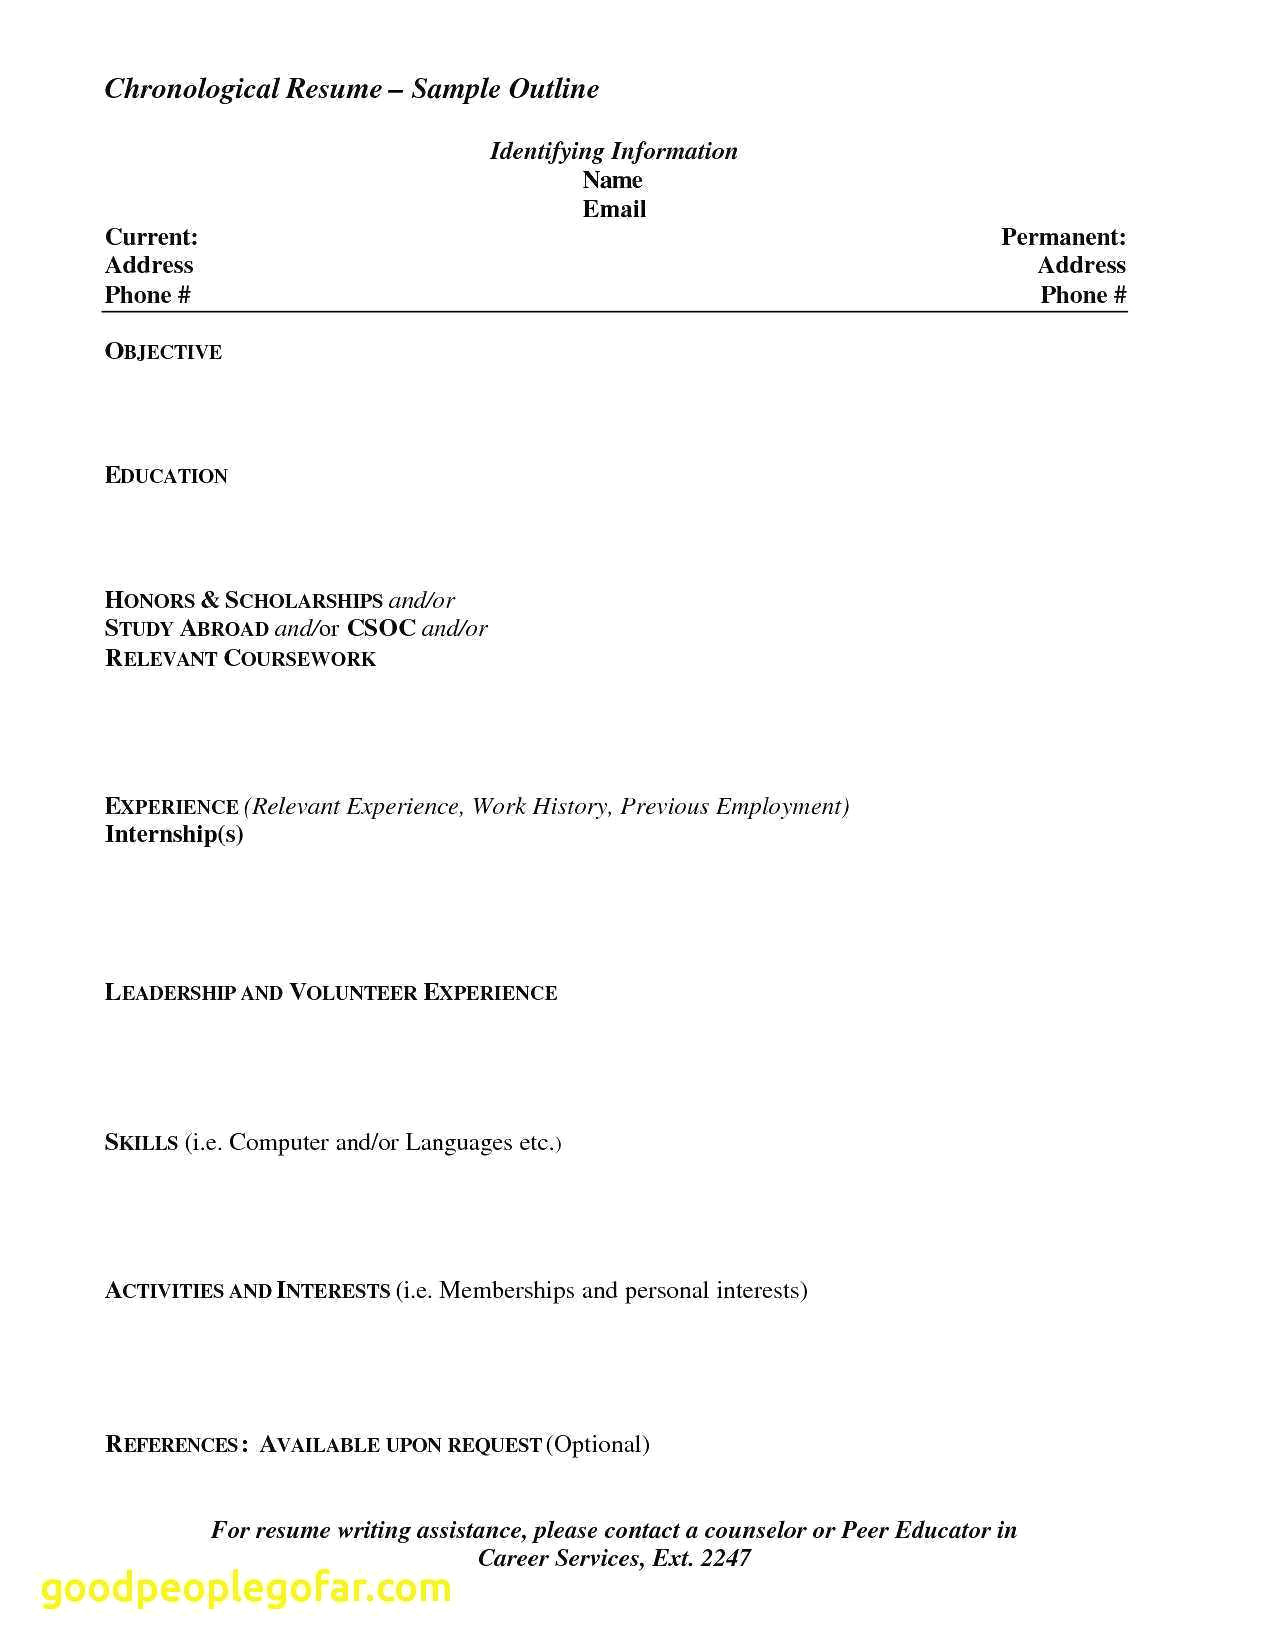 insurance agent resume Collection-Page Resume Template New Cover Page for Resume Awesome formatted Resume 0d Professional insurance agent 16-f